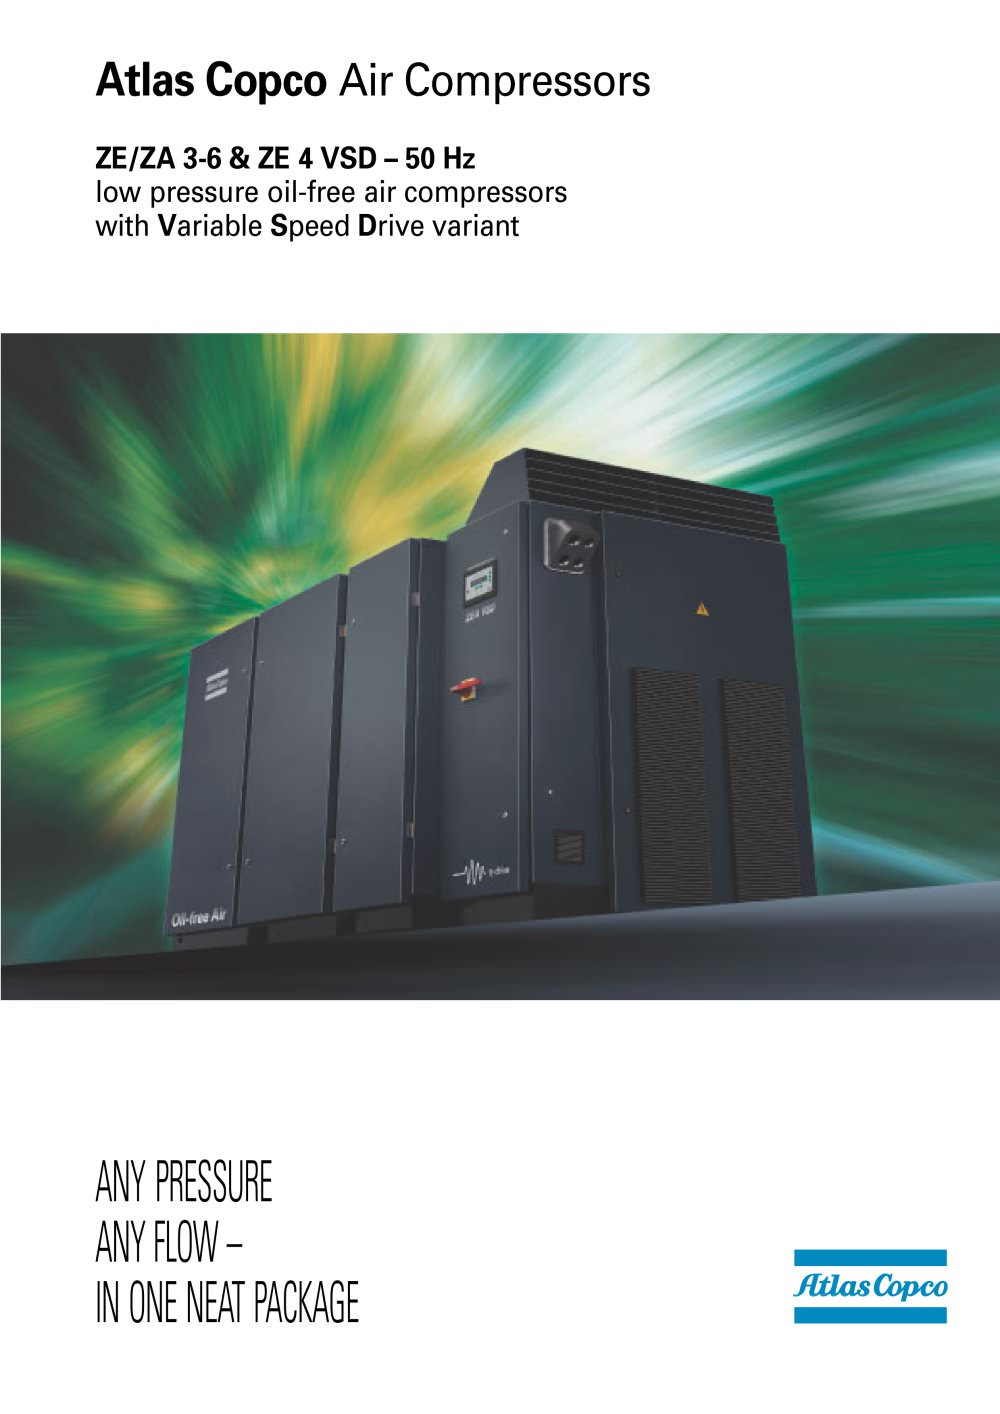 ZE/ZA 3-6 & ZE 4 VSD – 50 Hz low pressure oil-free air compressors with  Variable Speed Drive variant - 1 / 16 Pages